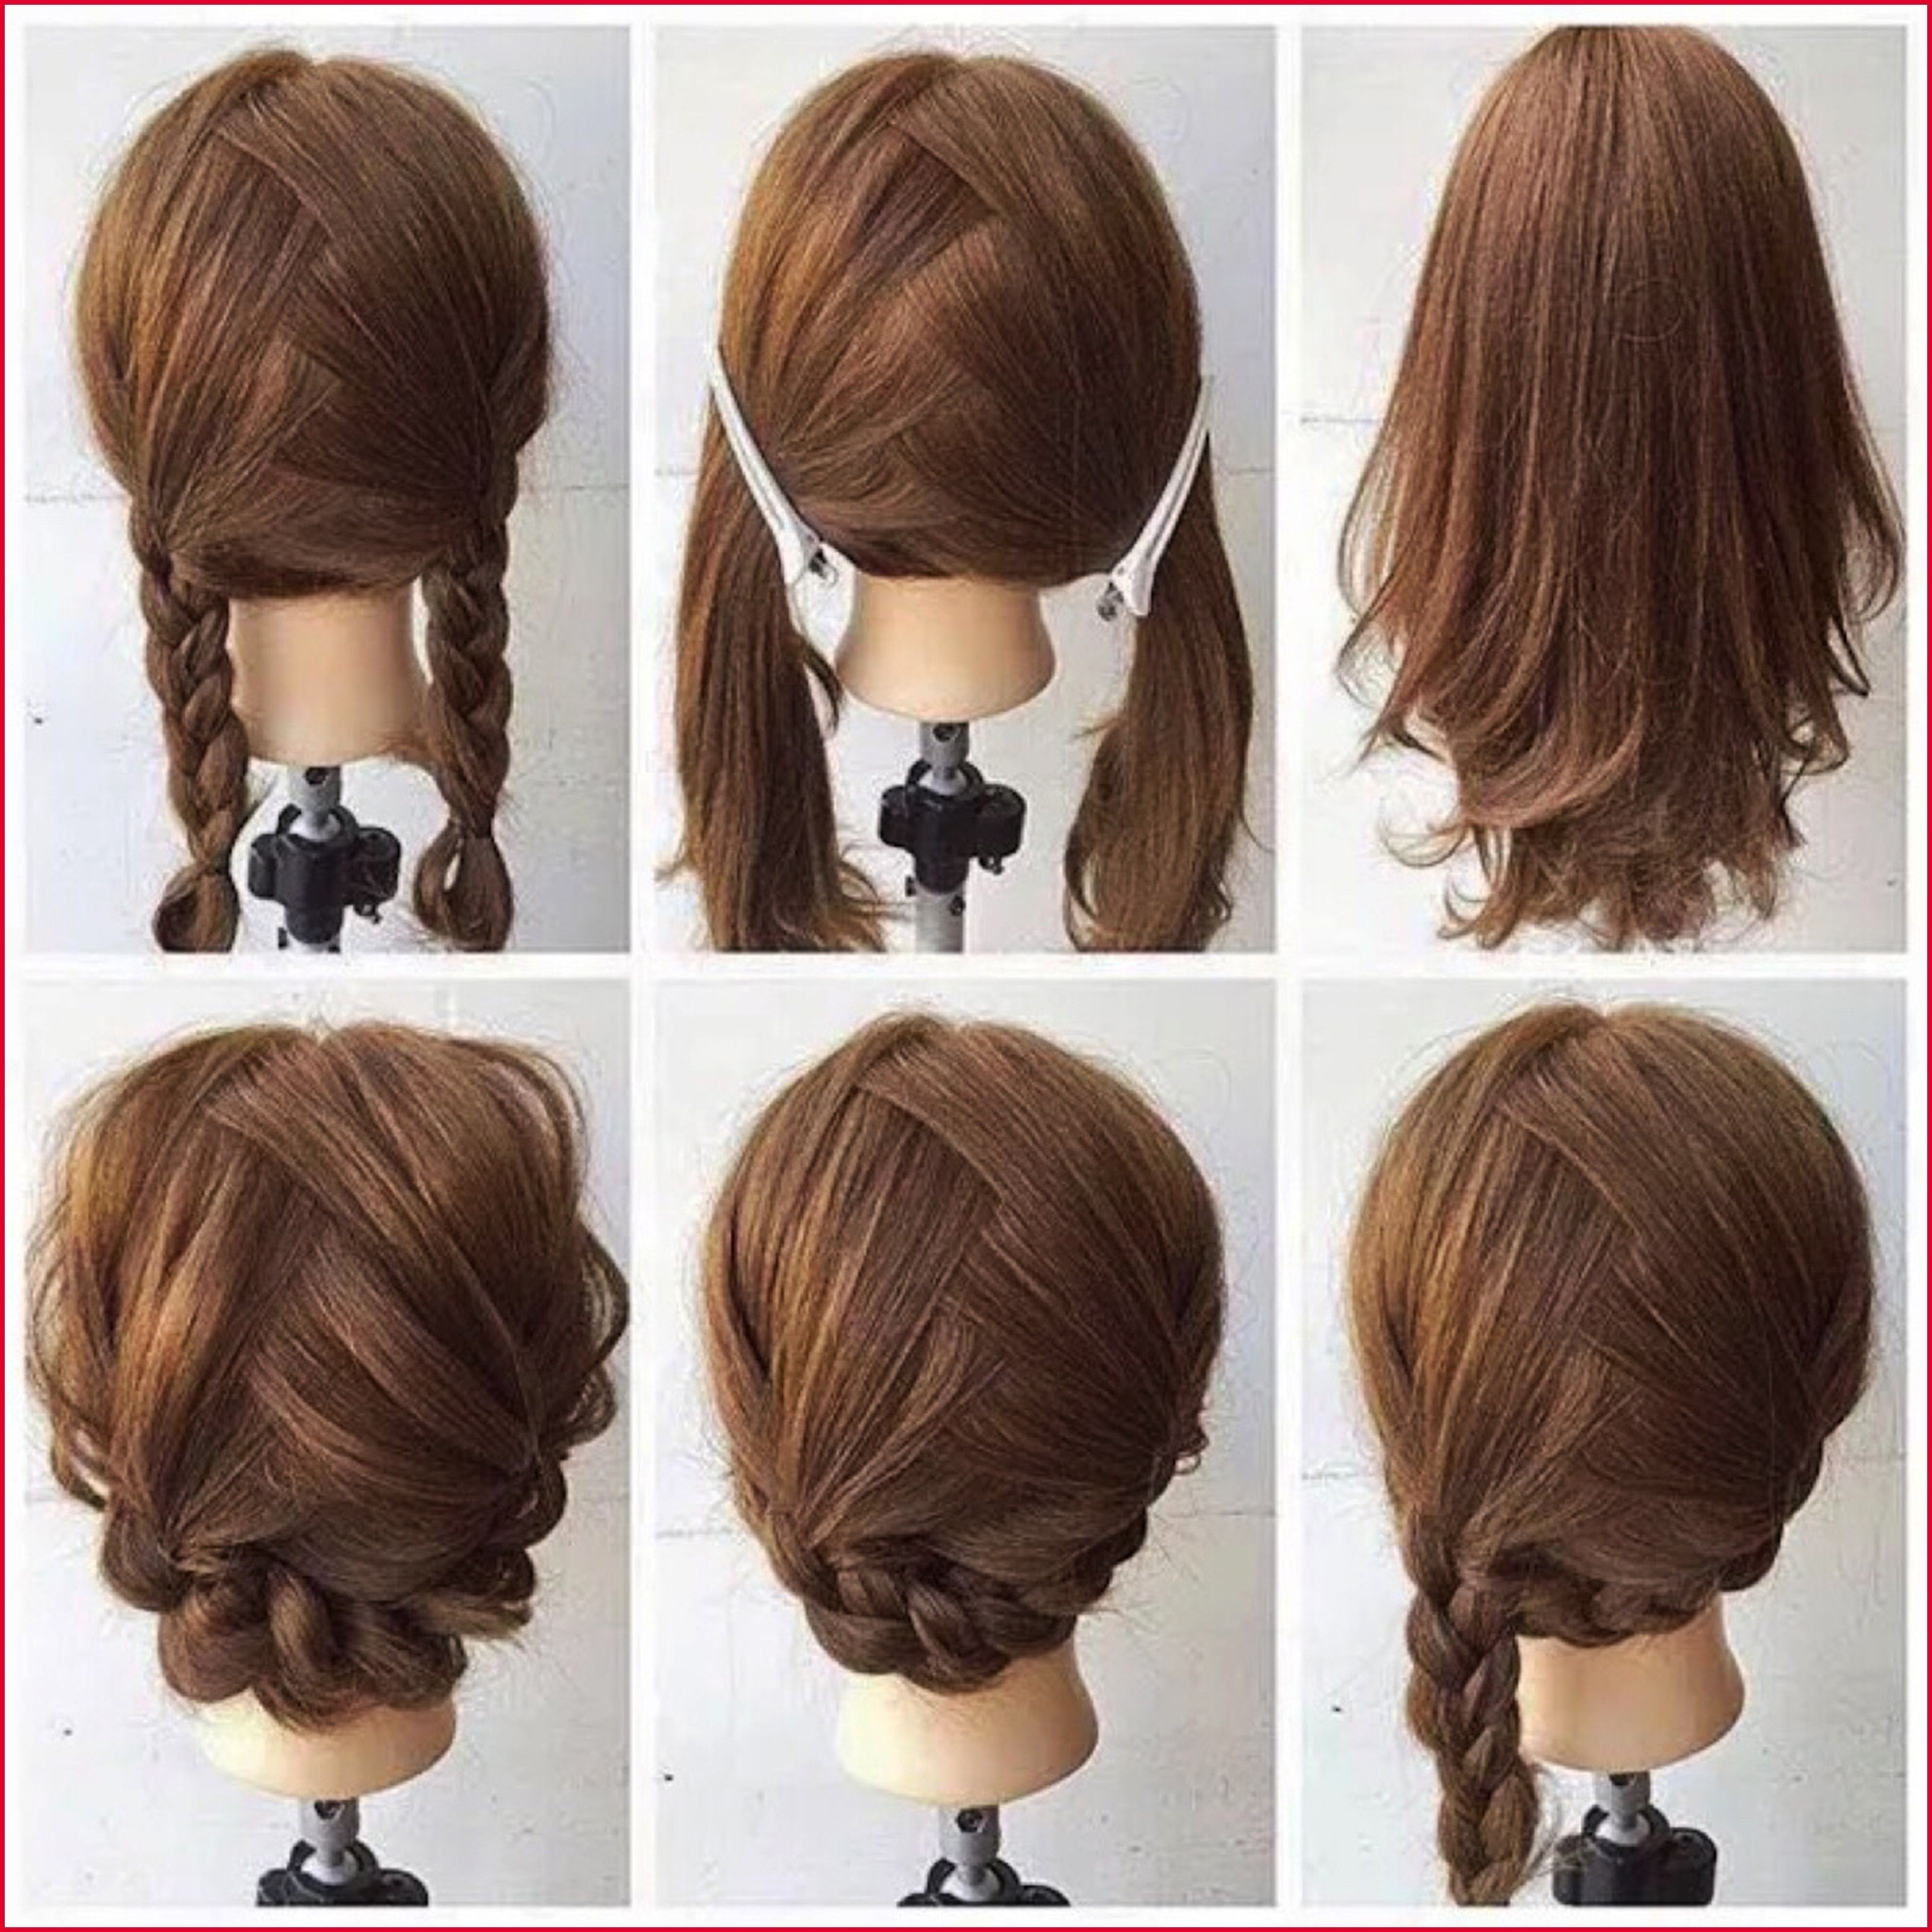 Braided Hairstyles For Medium Length Hair 72776 Fashionable Braid In Widely Used Shoulder Length Hair Braided Hairstyles (View 3 of 15)